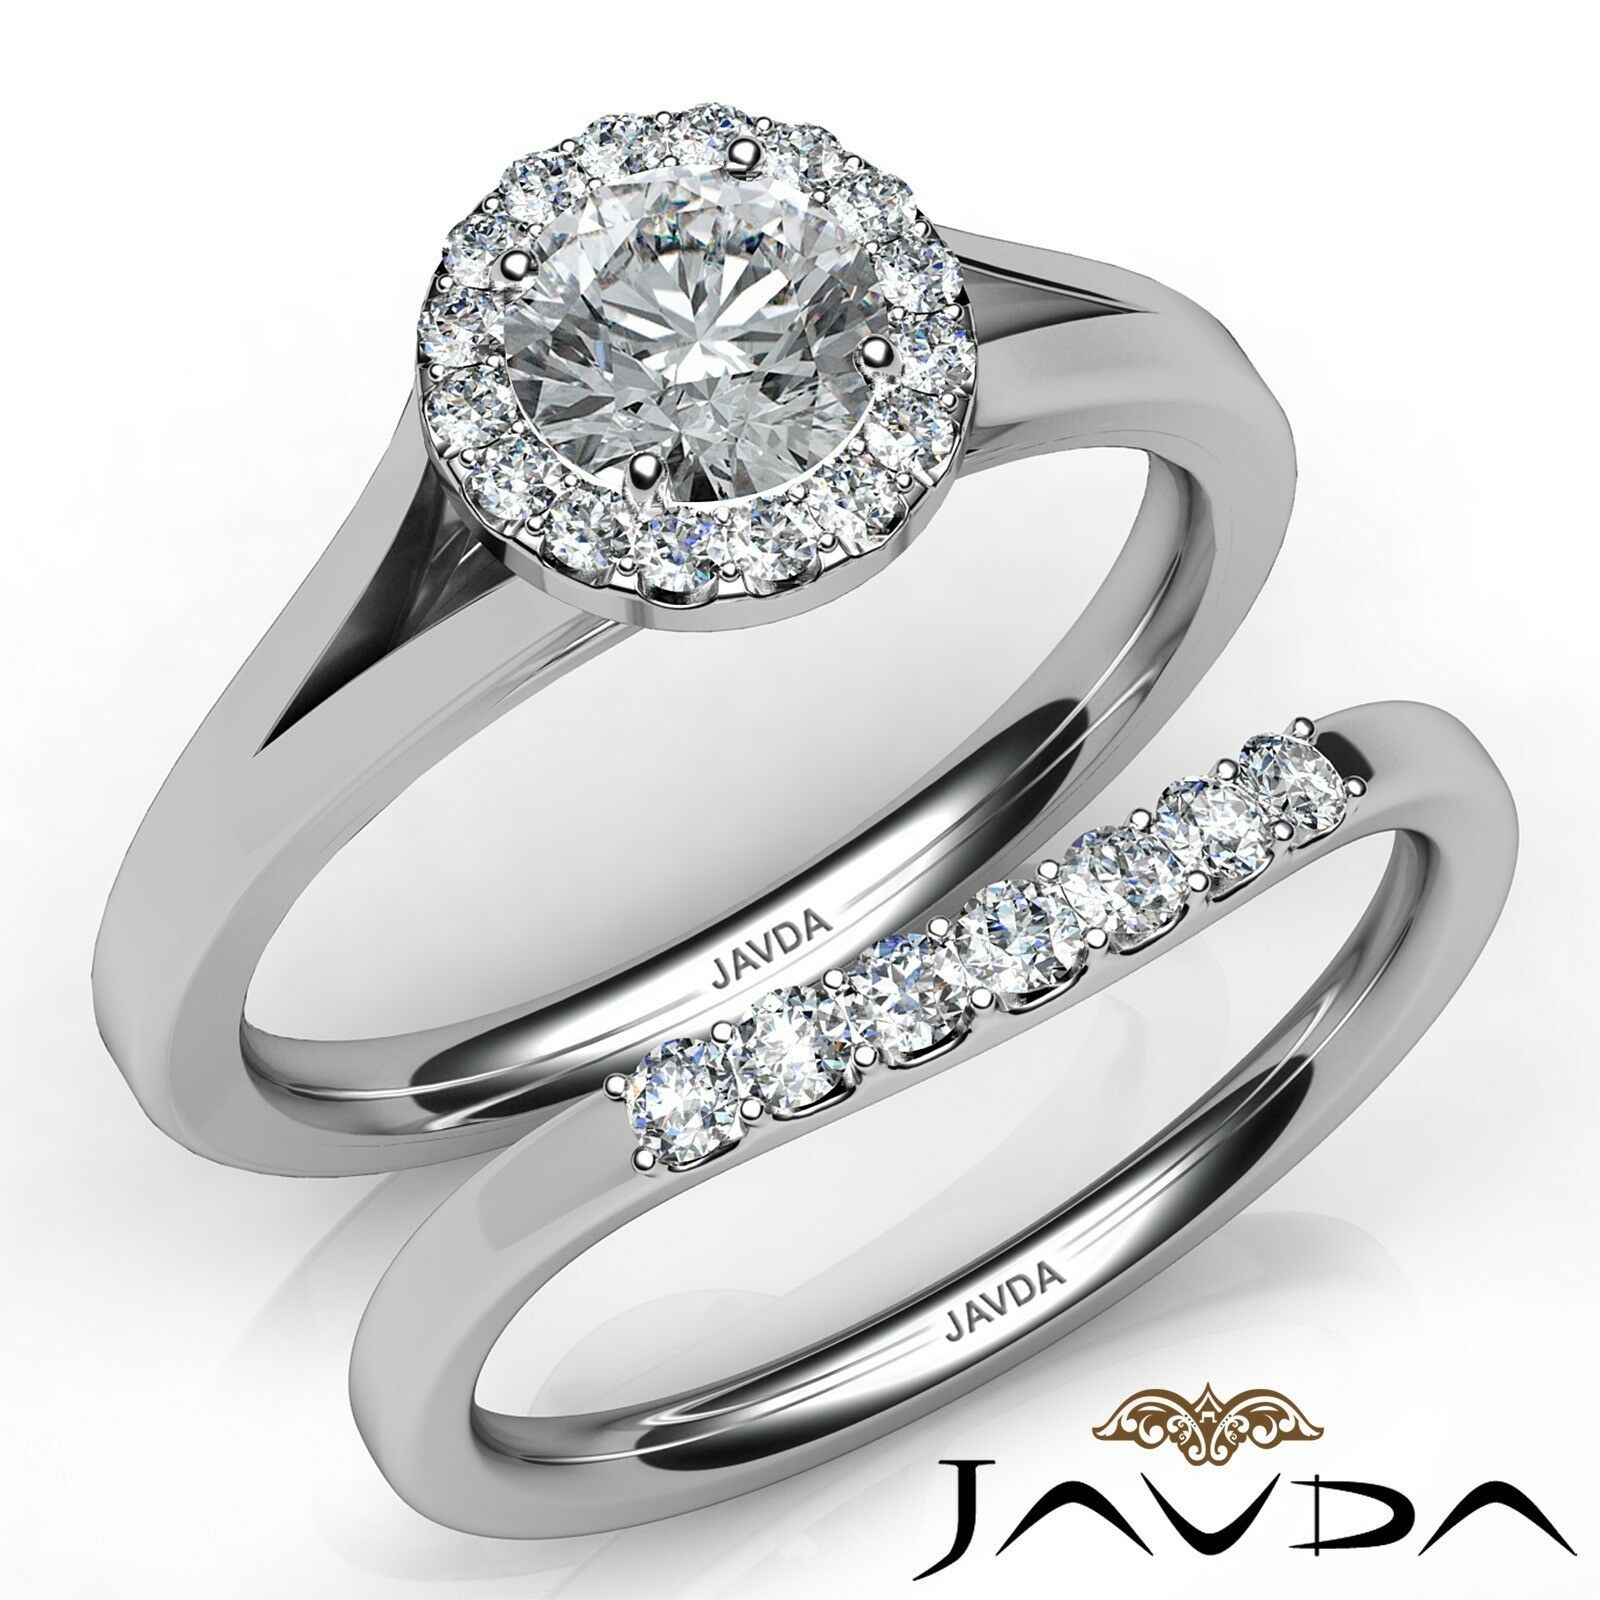 1.12ctw Classic Bridal Halo Pave Round Diamond Engagement Ring GIA F-VVS1 W Gold